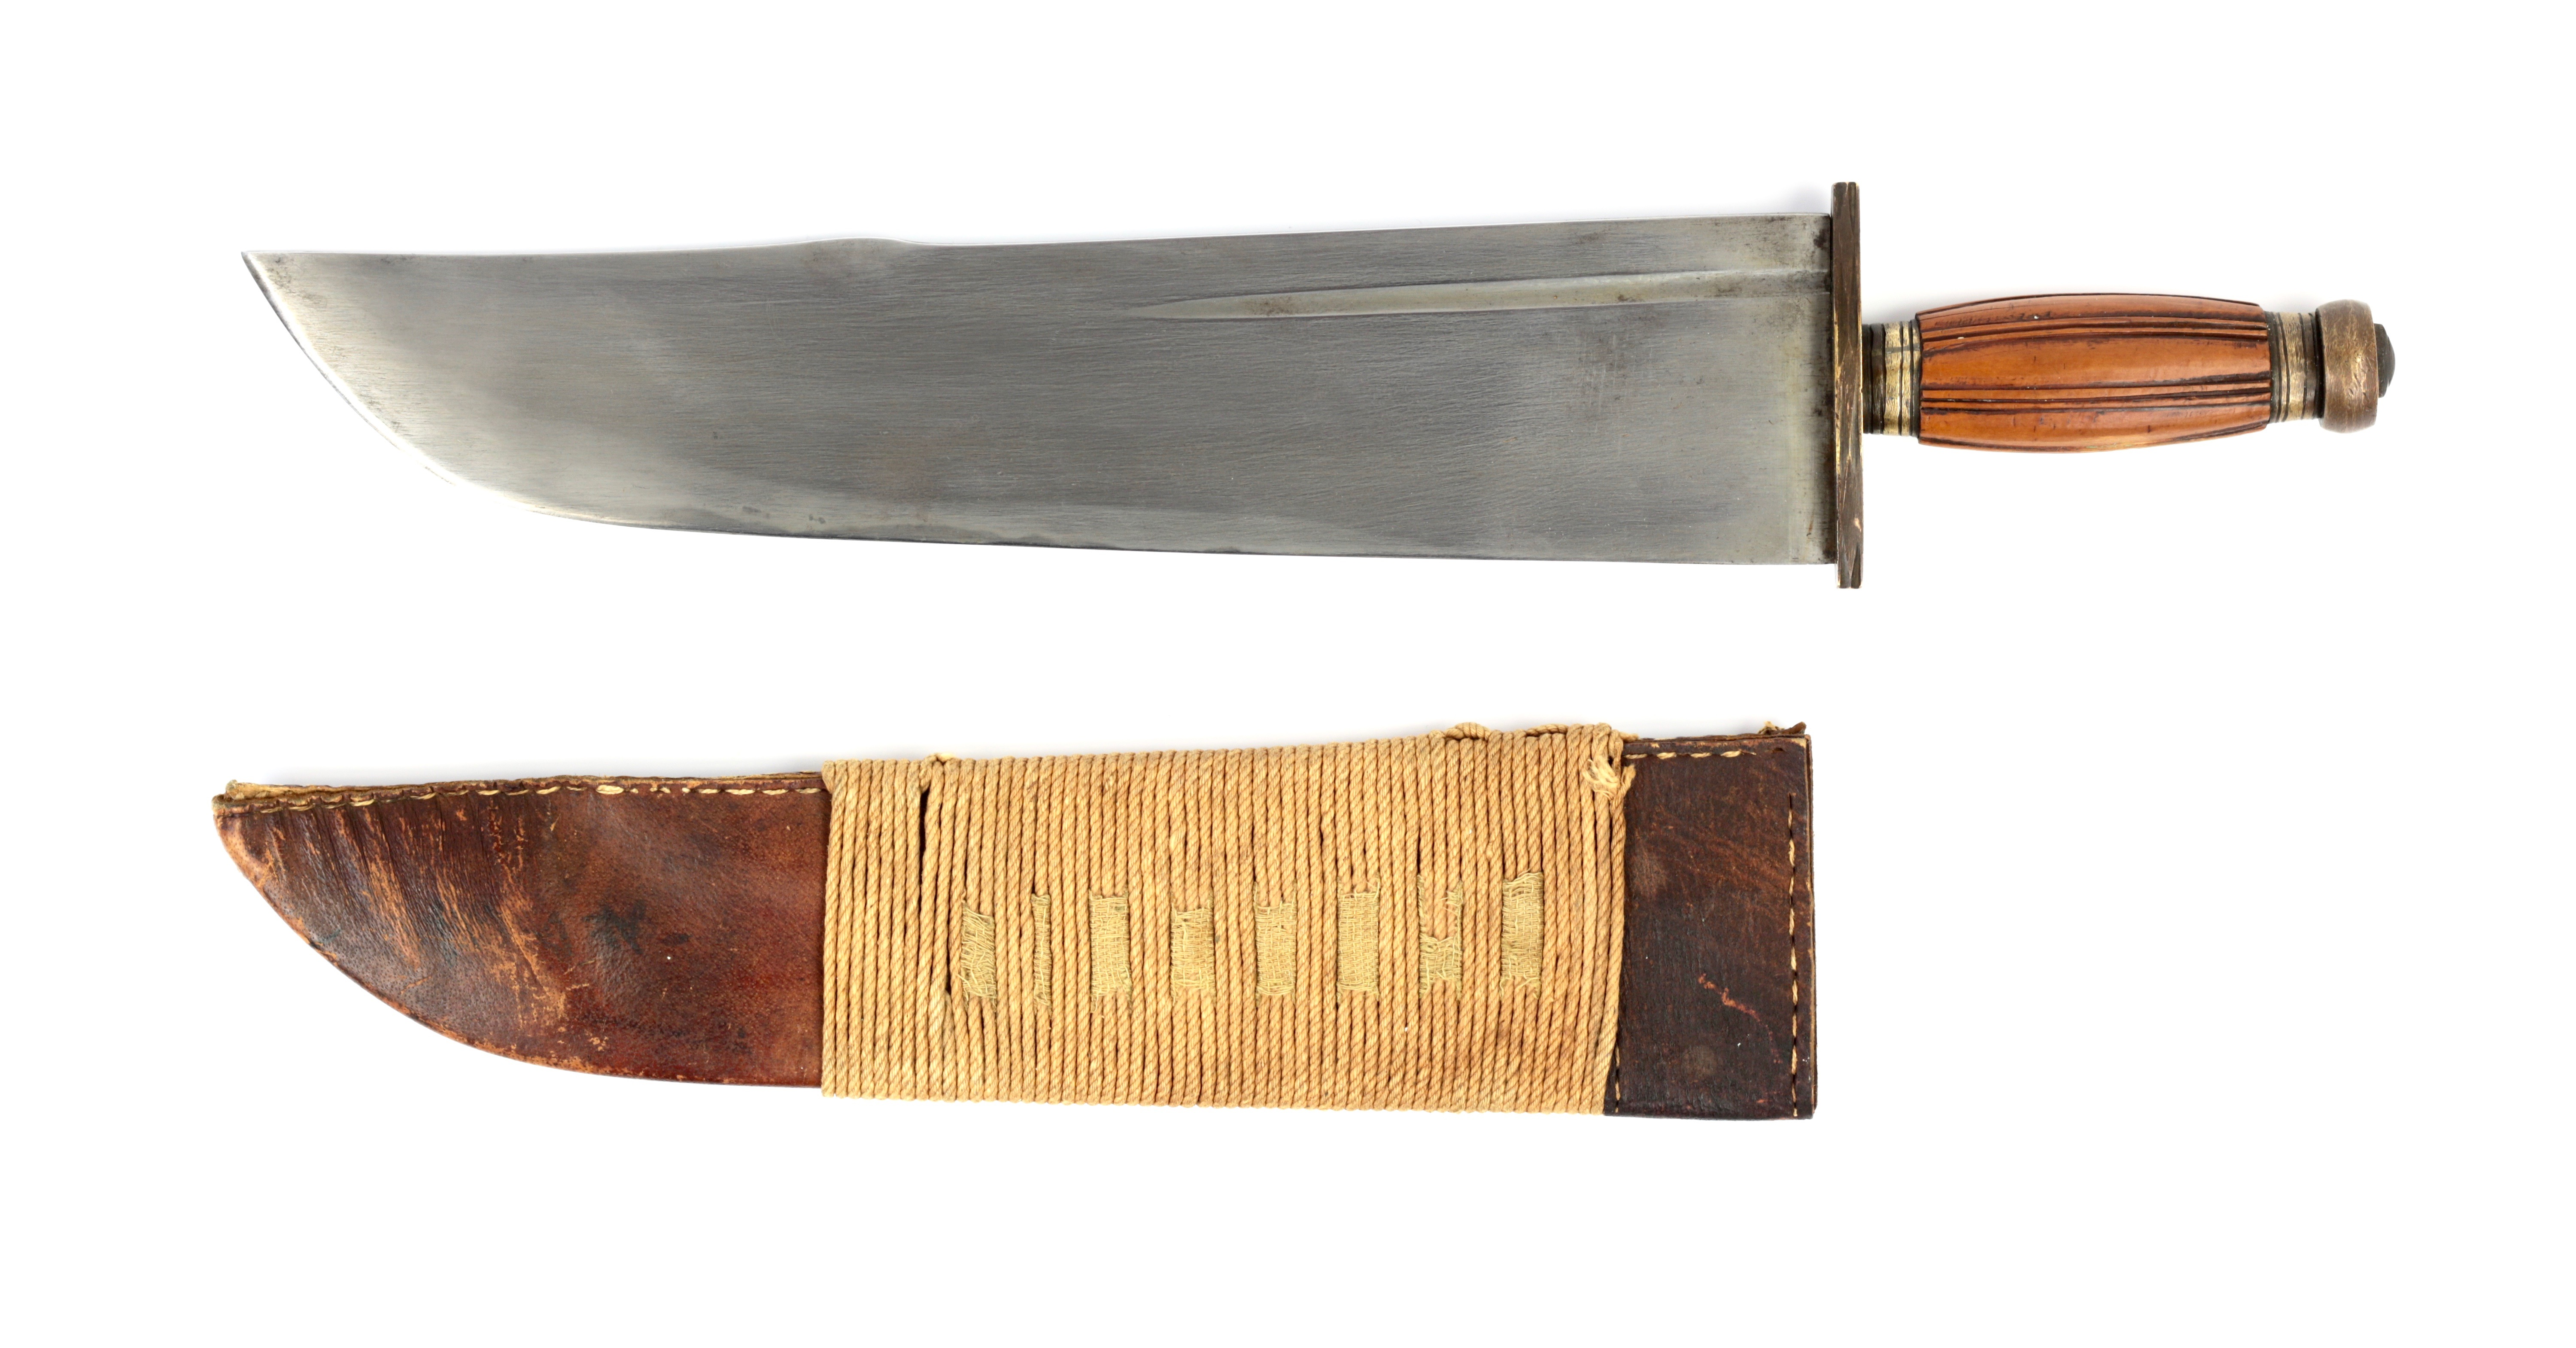 A wide-bladed Chinese fighting knife